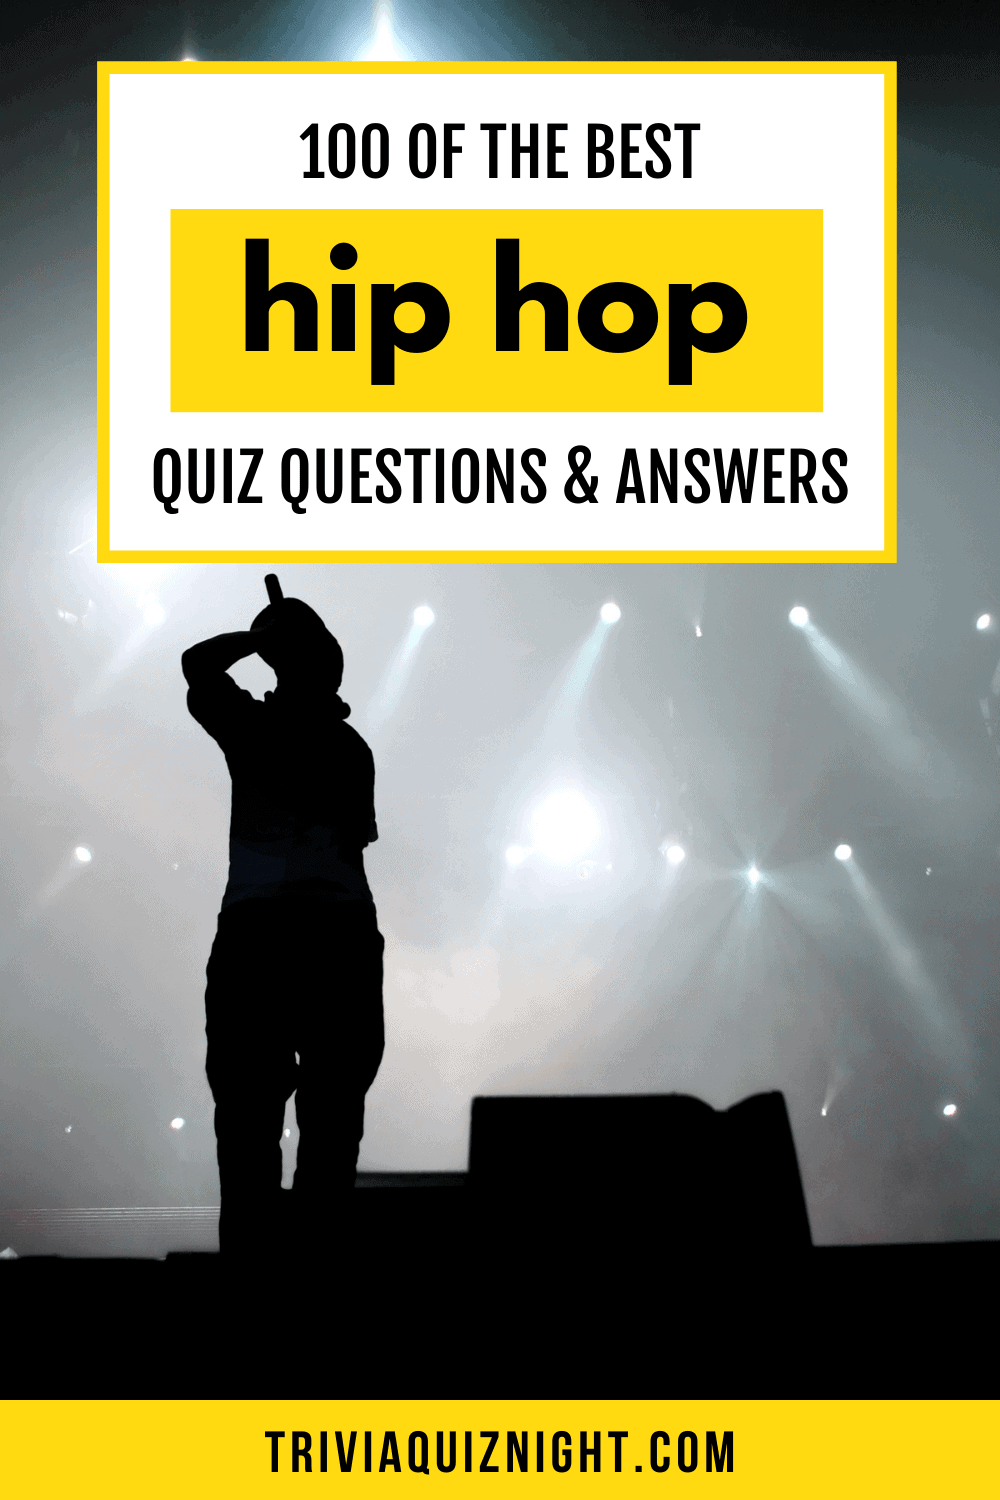 100 of the best hip hop quiz questions and answers, plus rap trivia for your epic virtual quiz